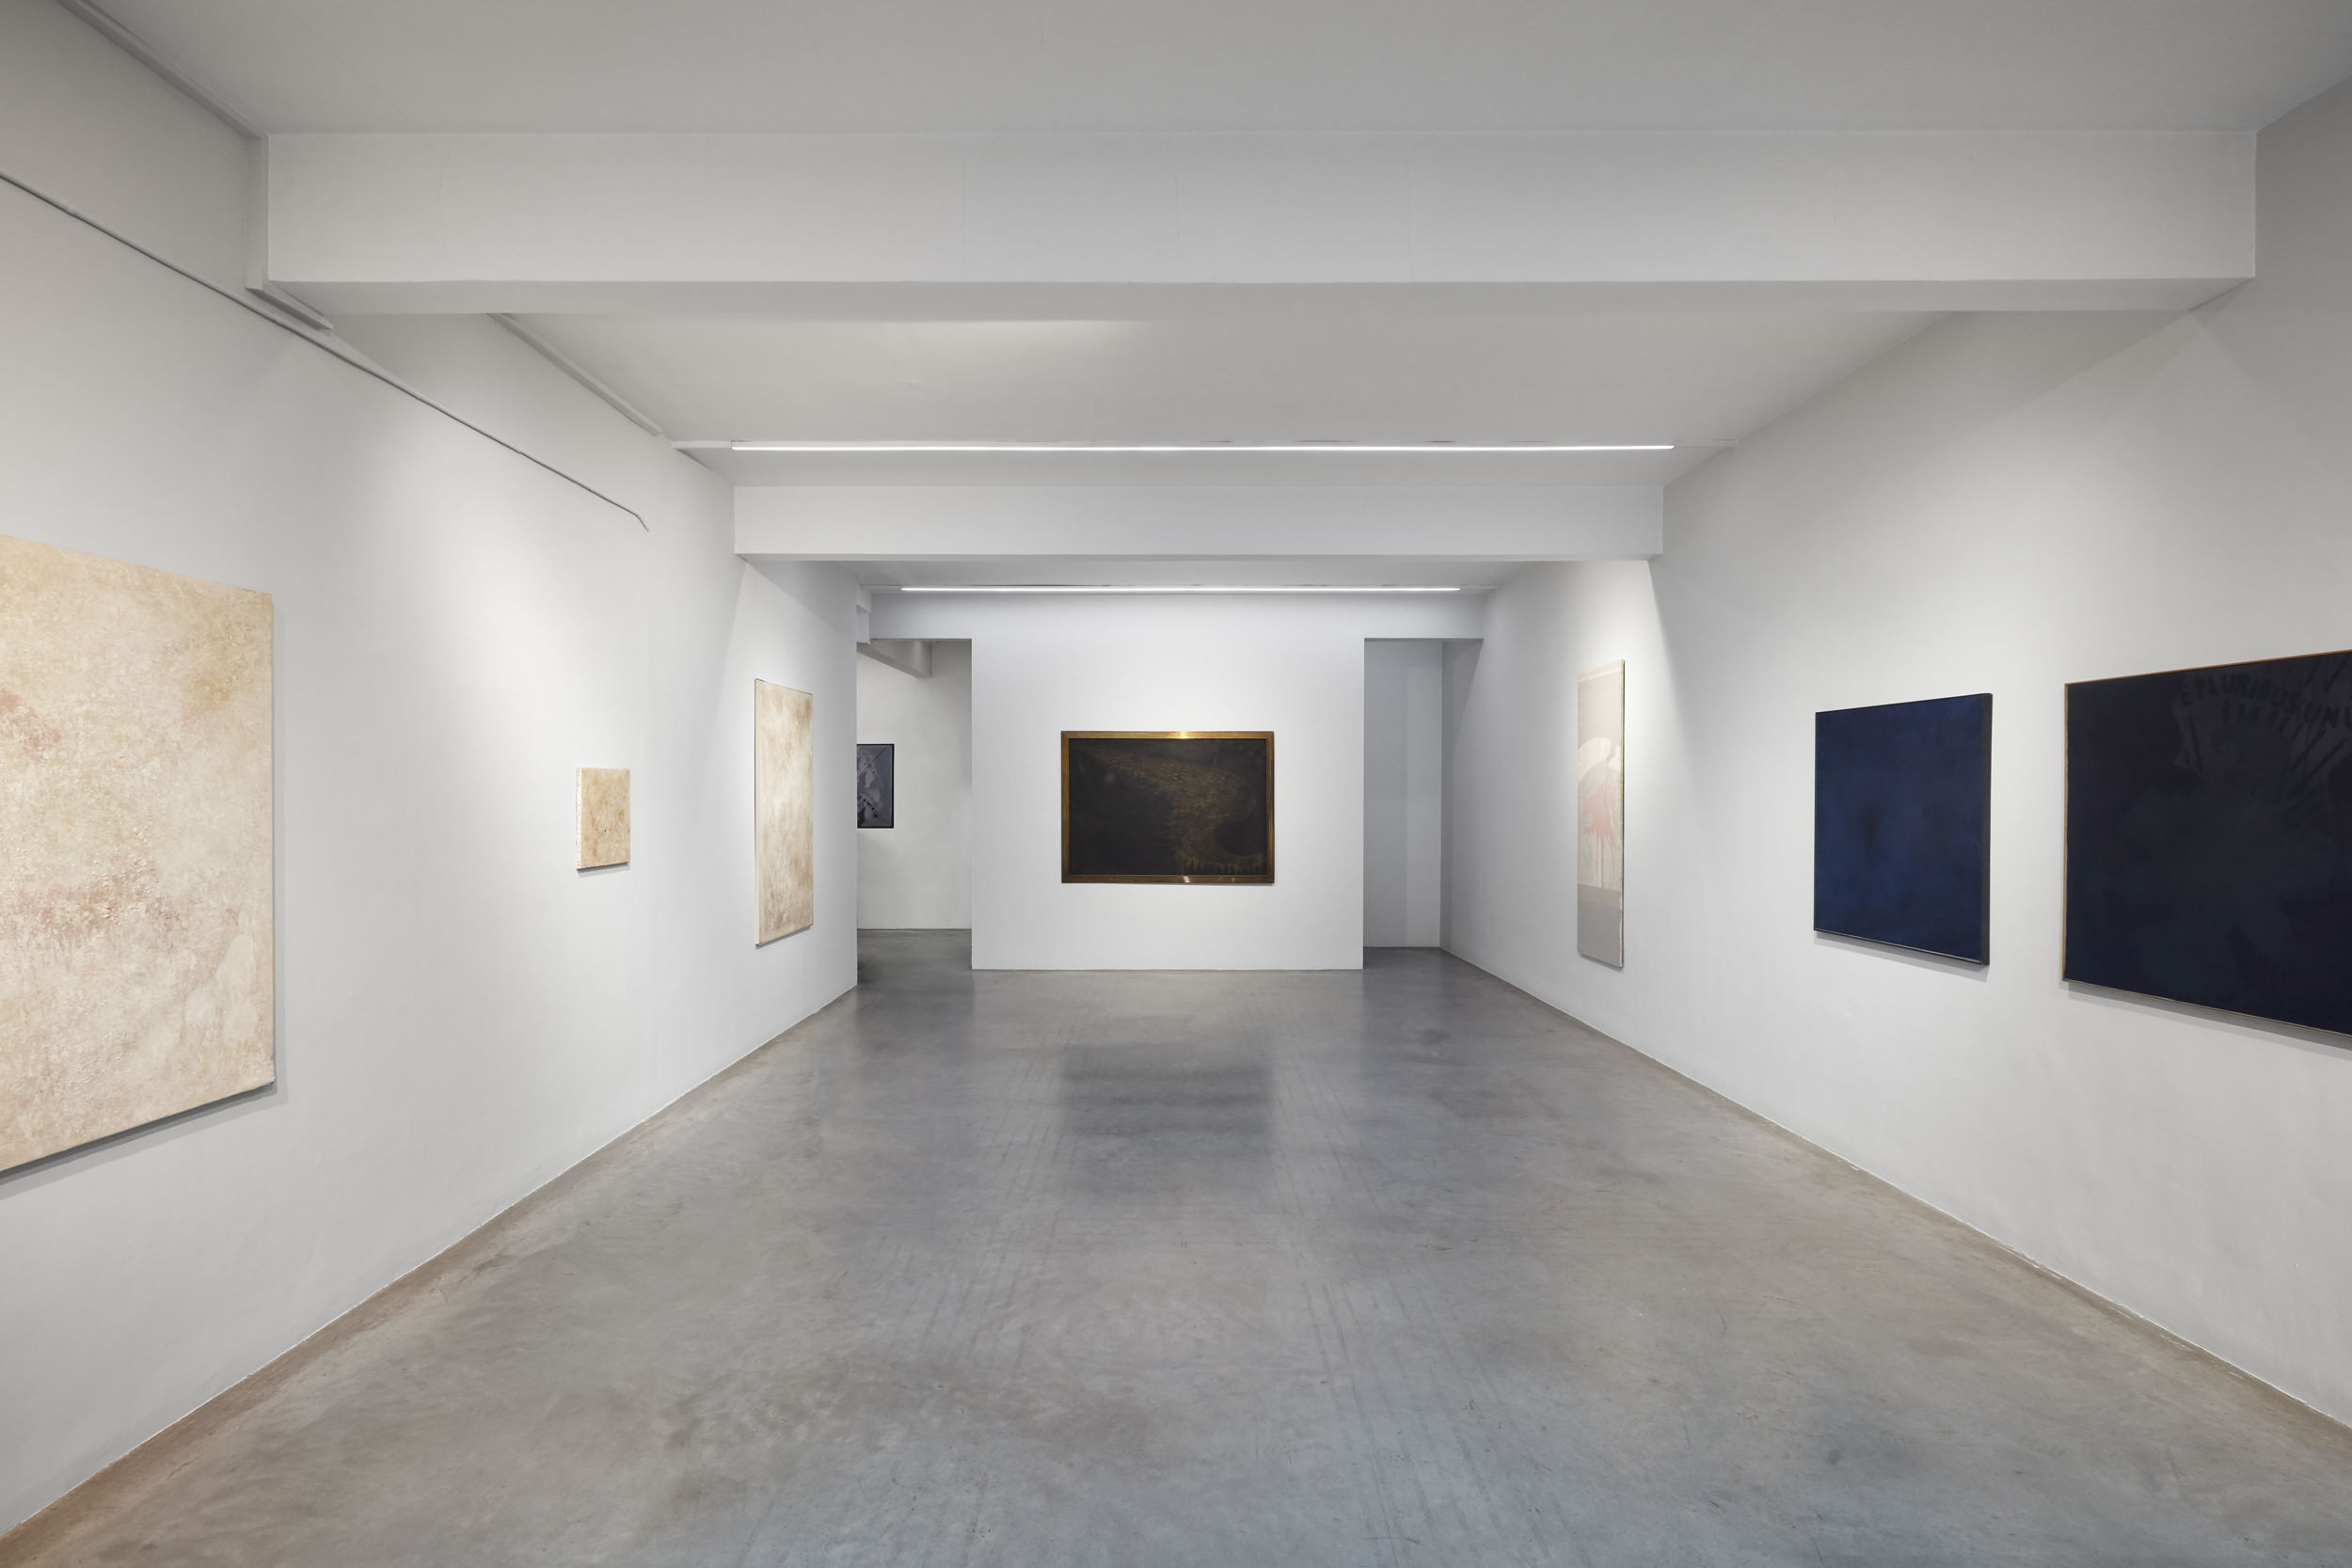 Franco Angeli, A Selection of Artworks from Important European Collections, Installation View 3